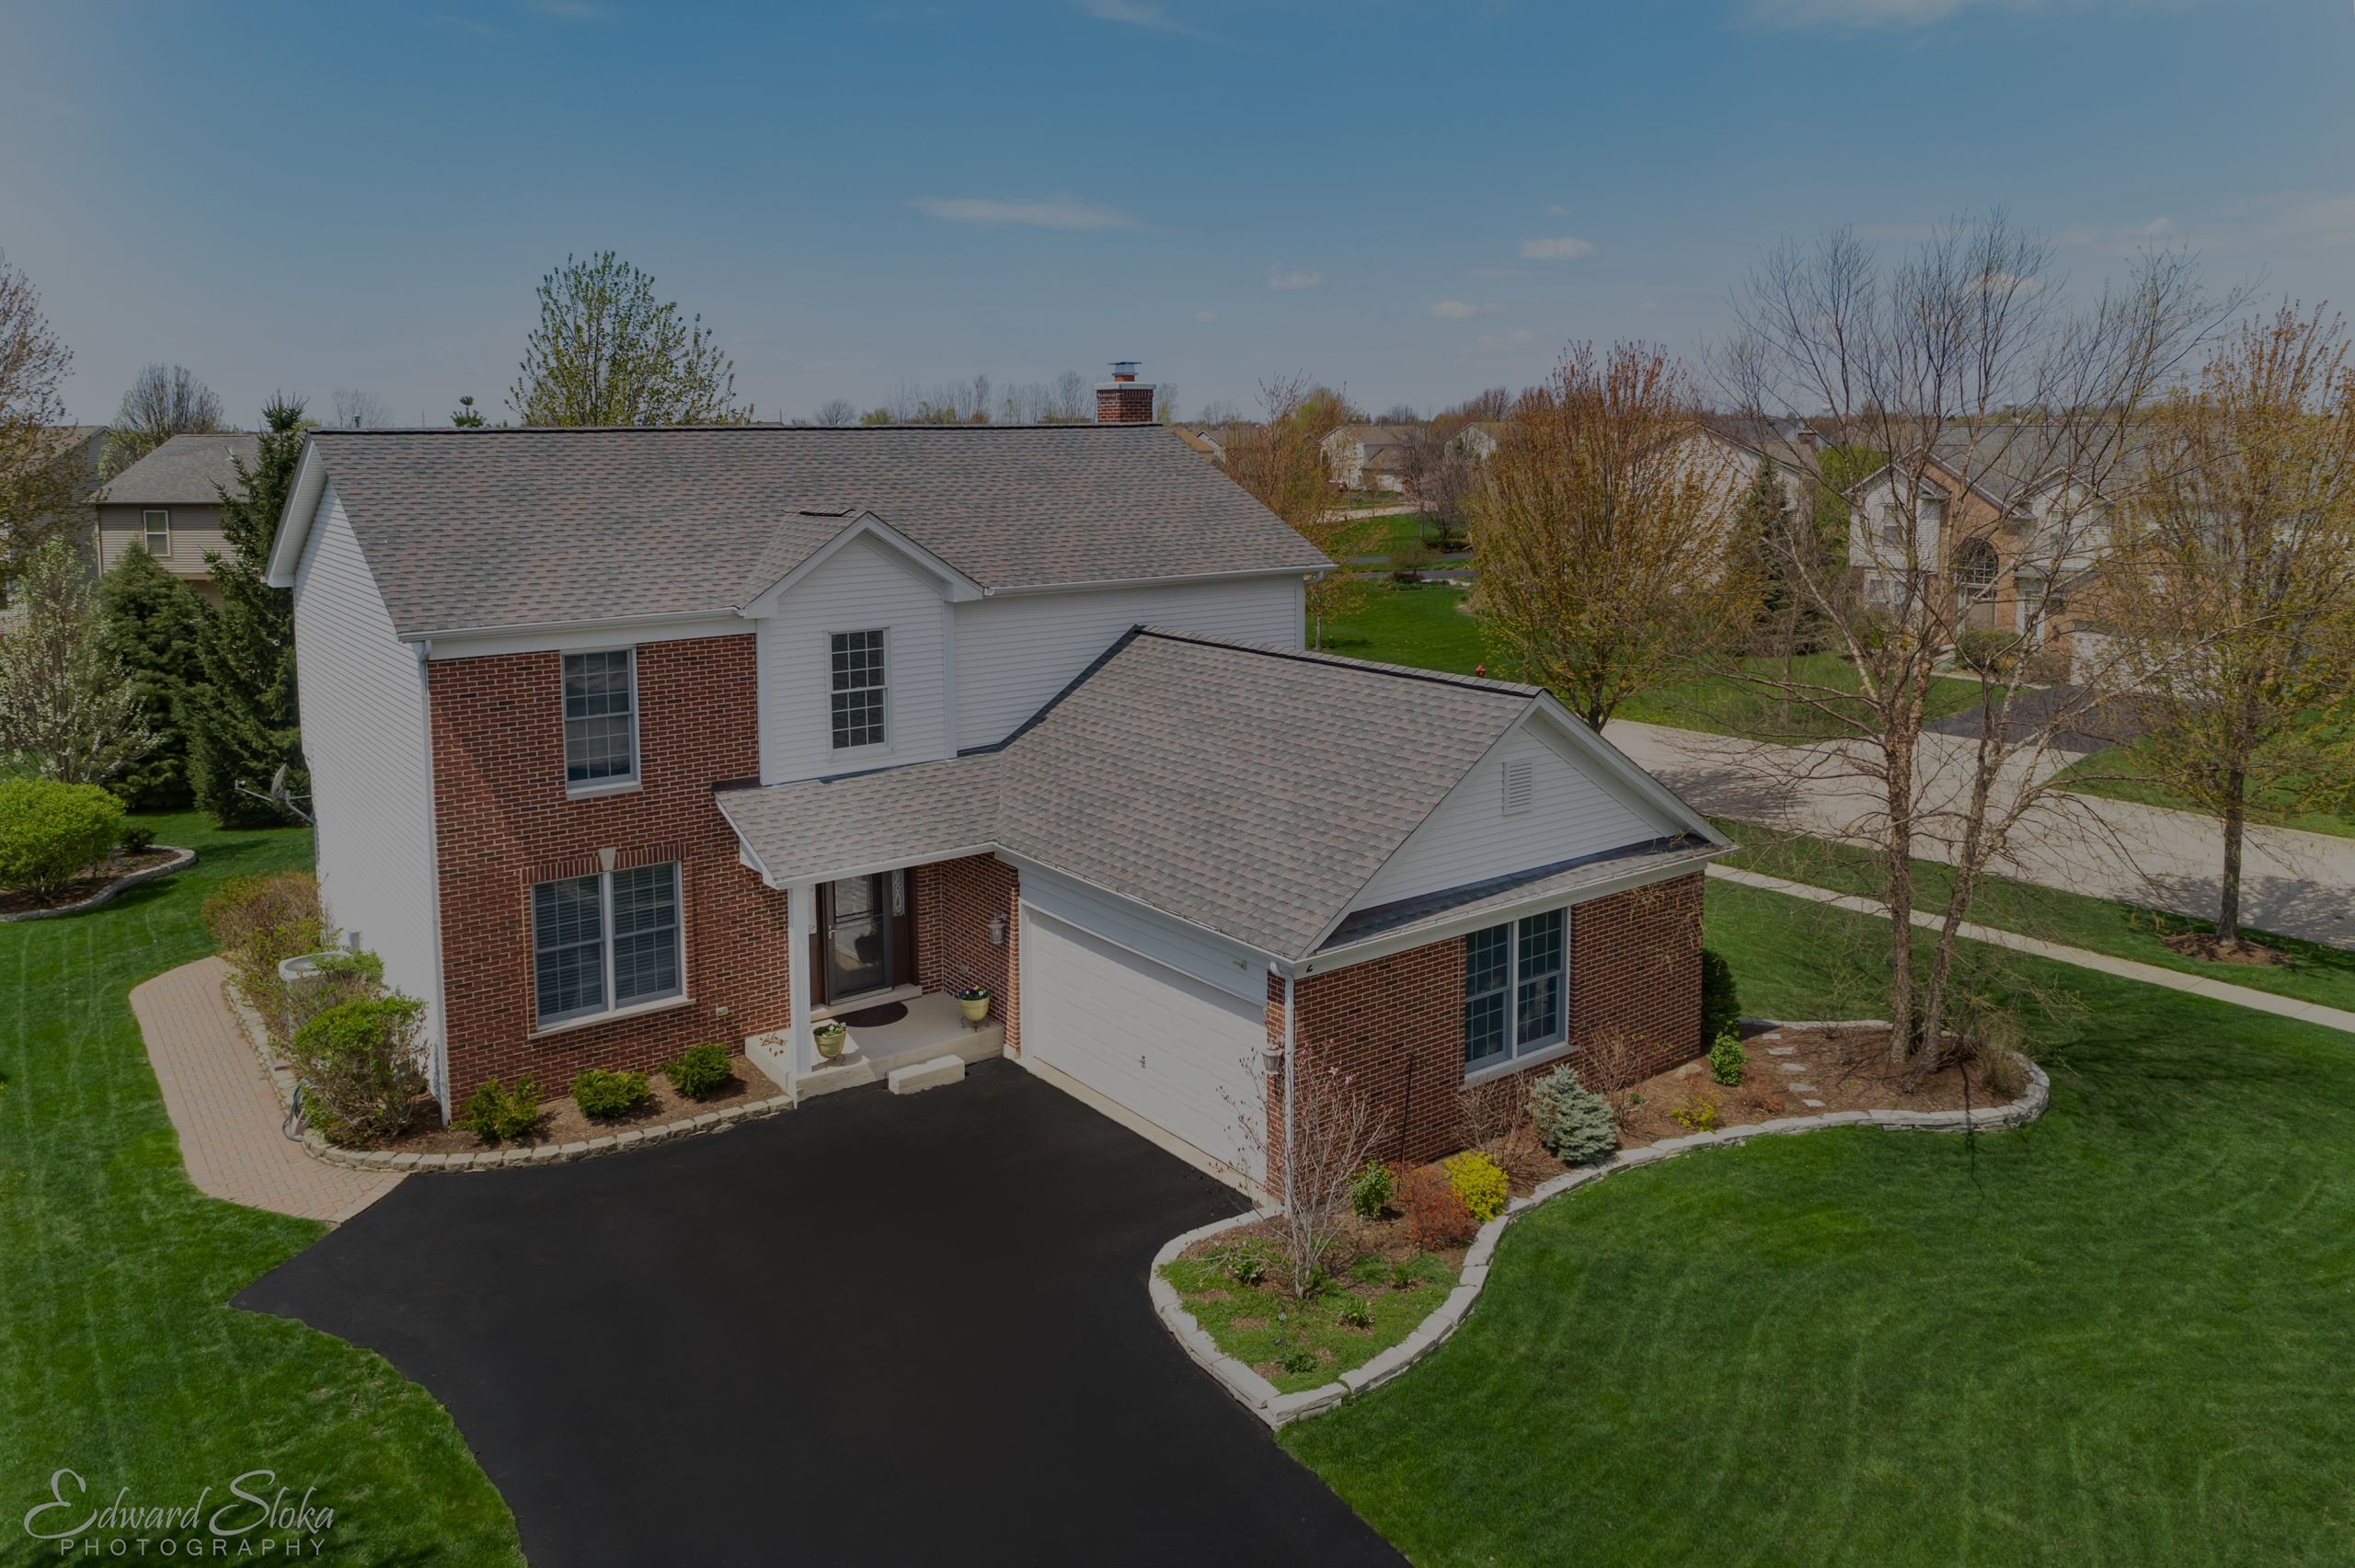 New Listing! 2 Charminster, Algonquin, IL $339,900